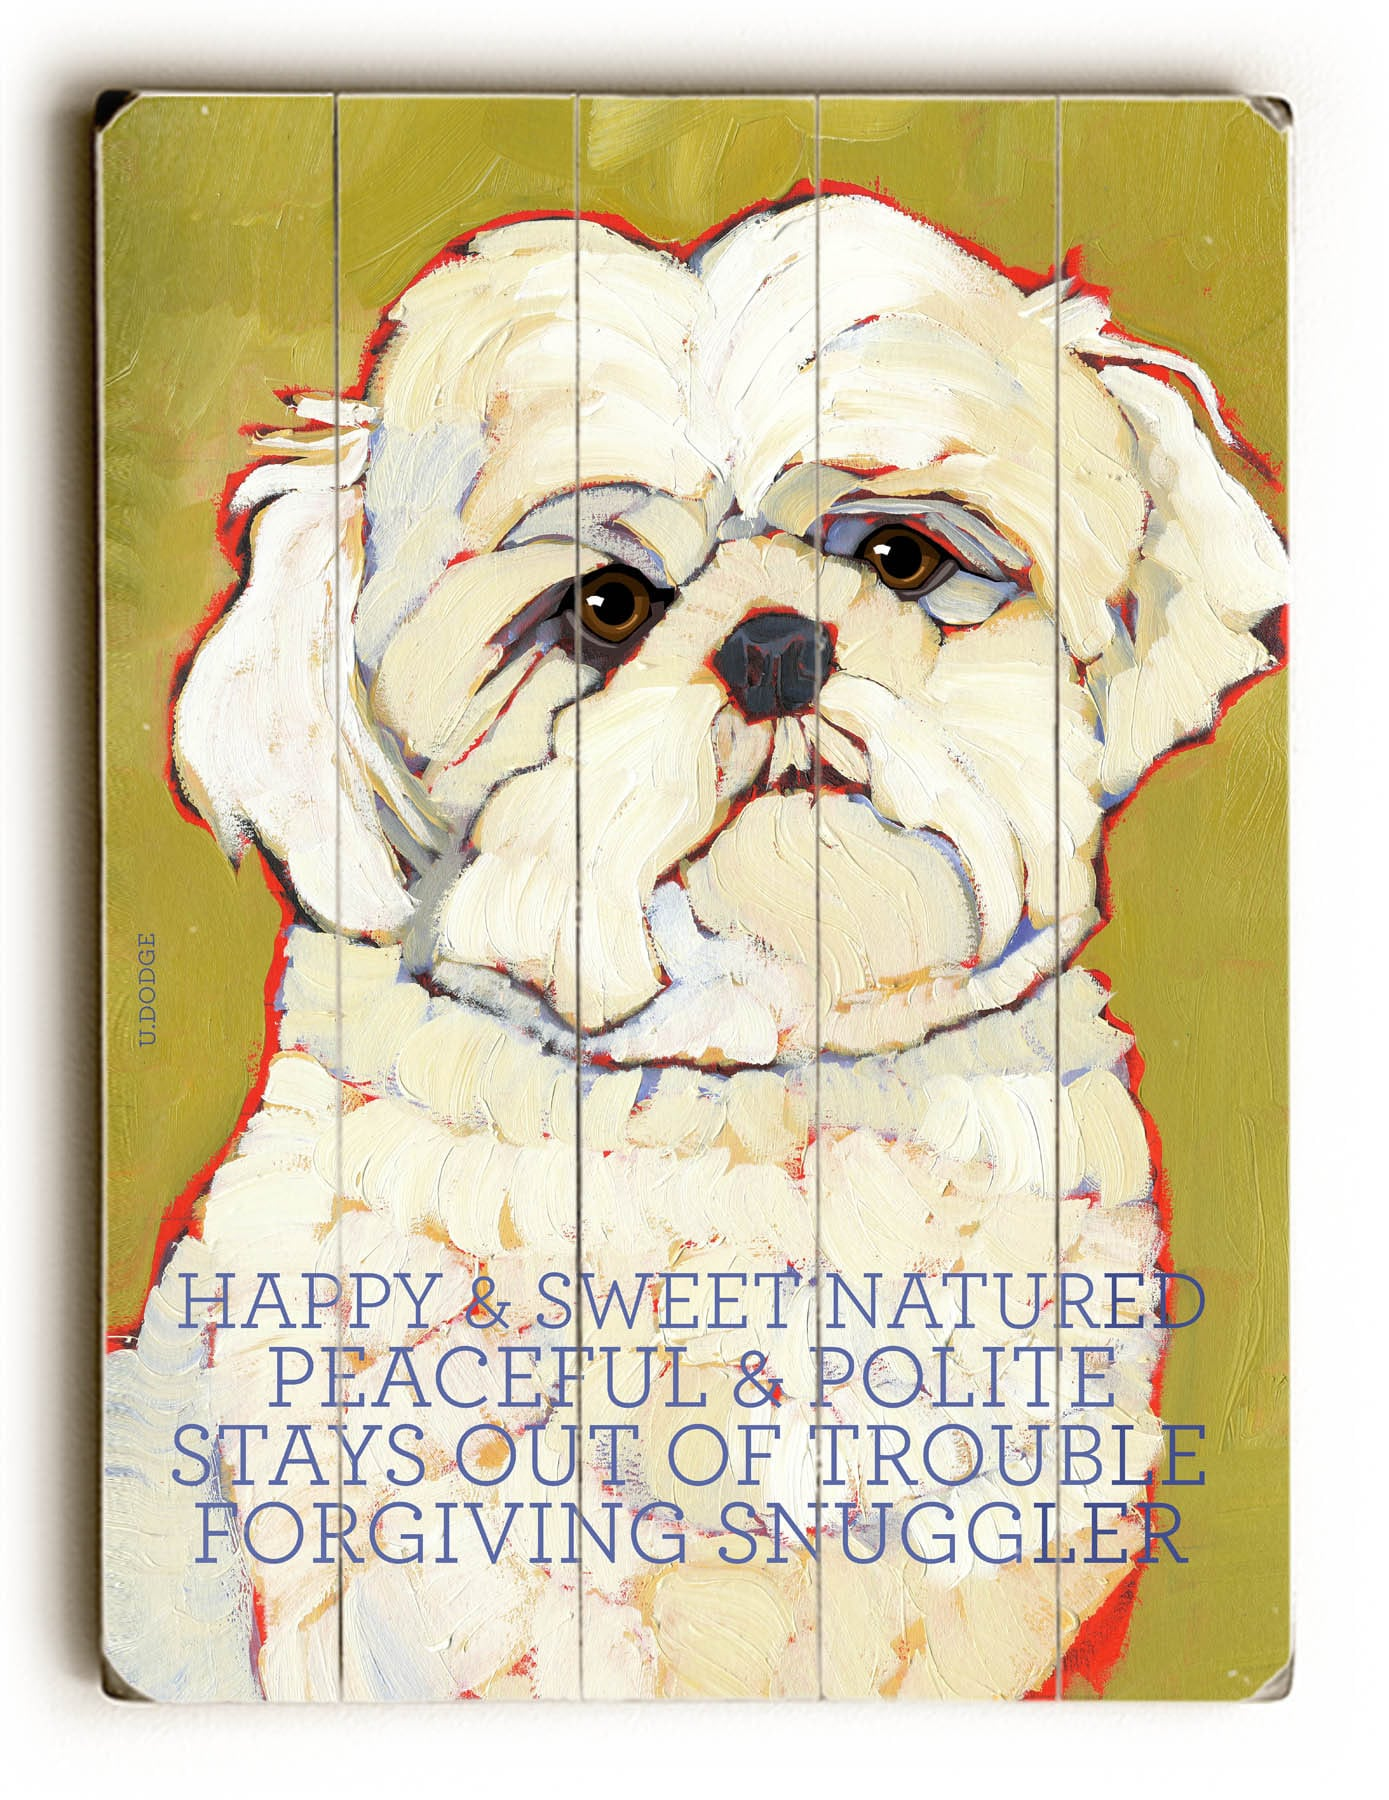 Maltese - Dog Pictures, Dog Print, Dog Art. Wall Art and Wooden Signs with Dog Pictures and Dog Quotes. Features the Maltese dog breed.